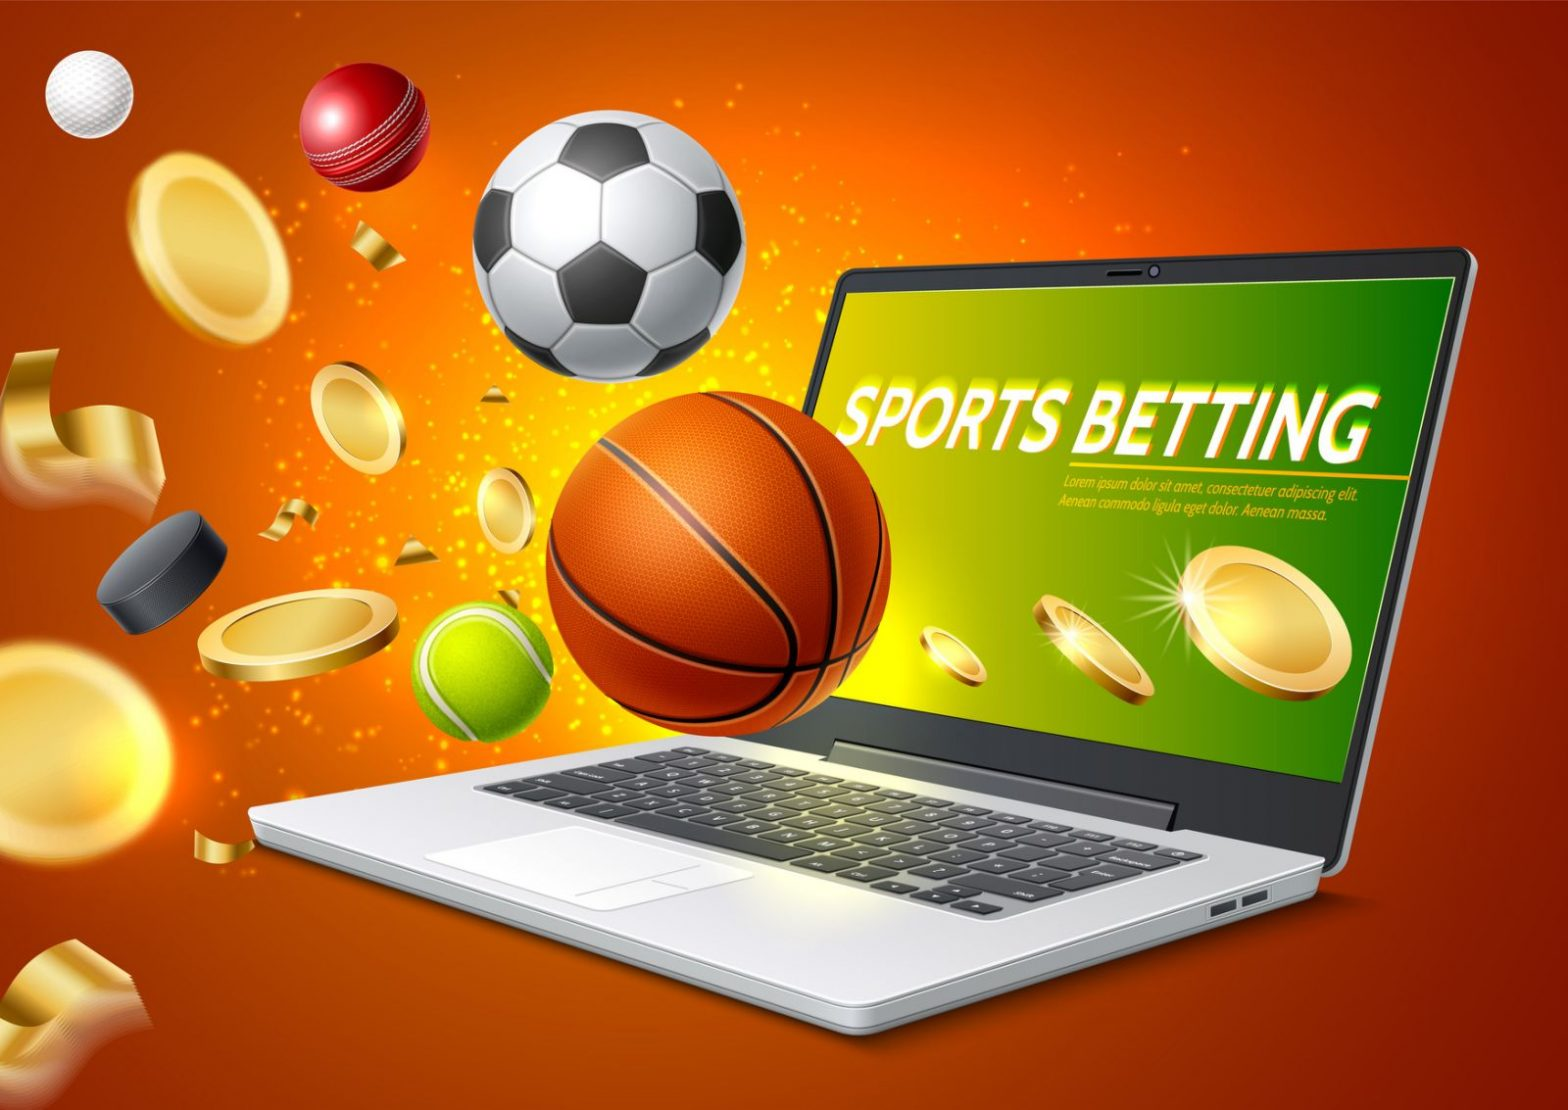 How to bet online?